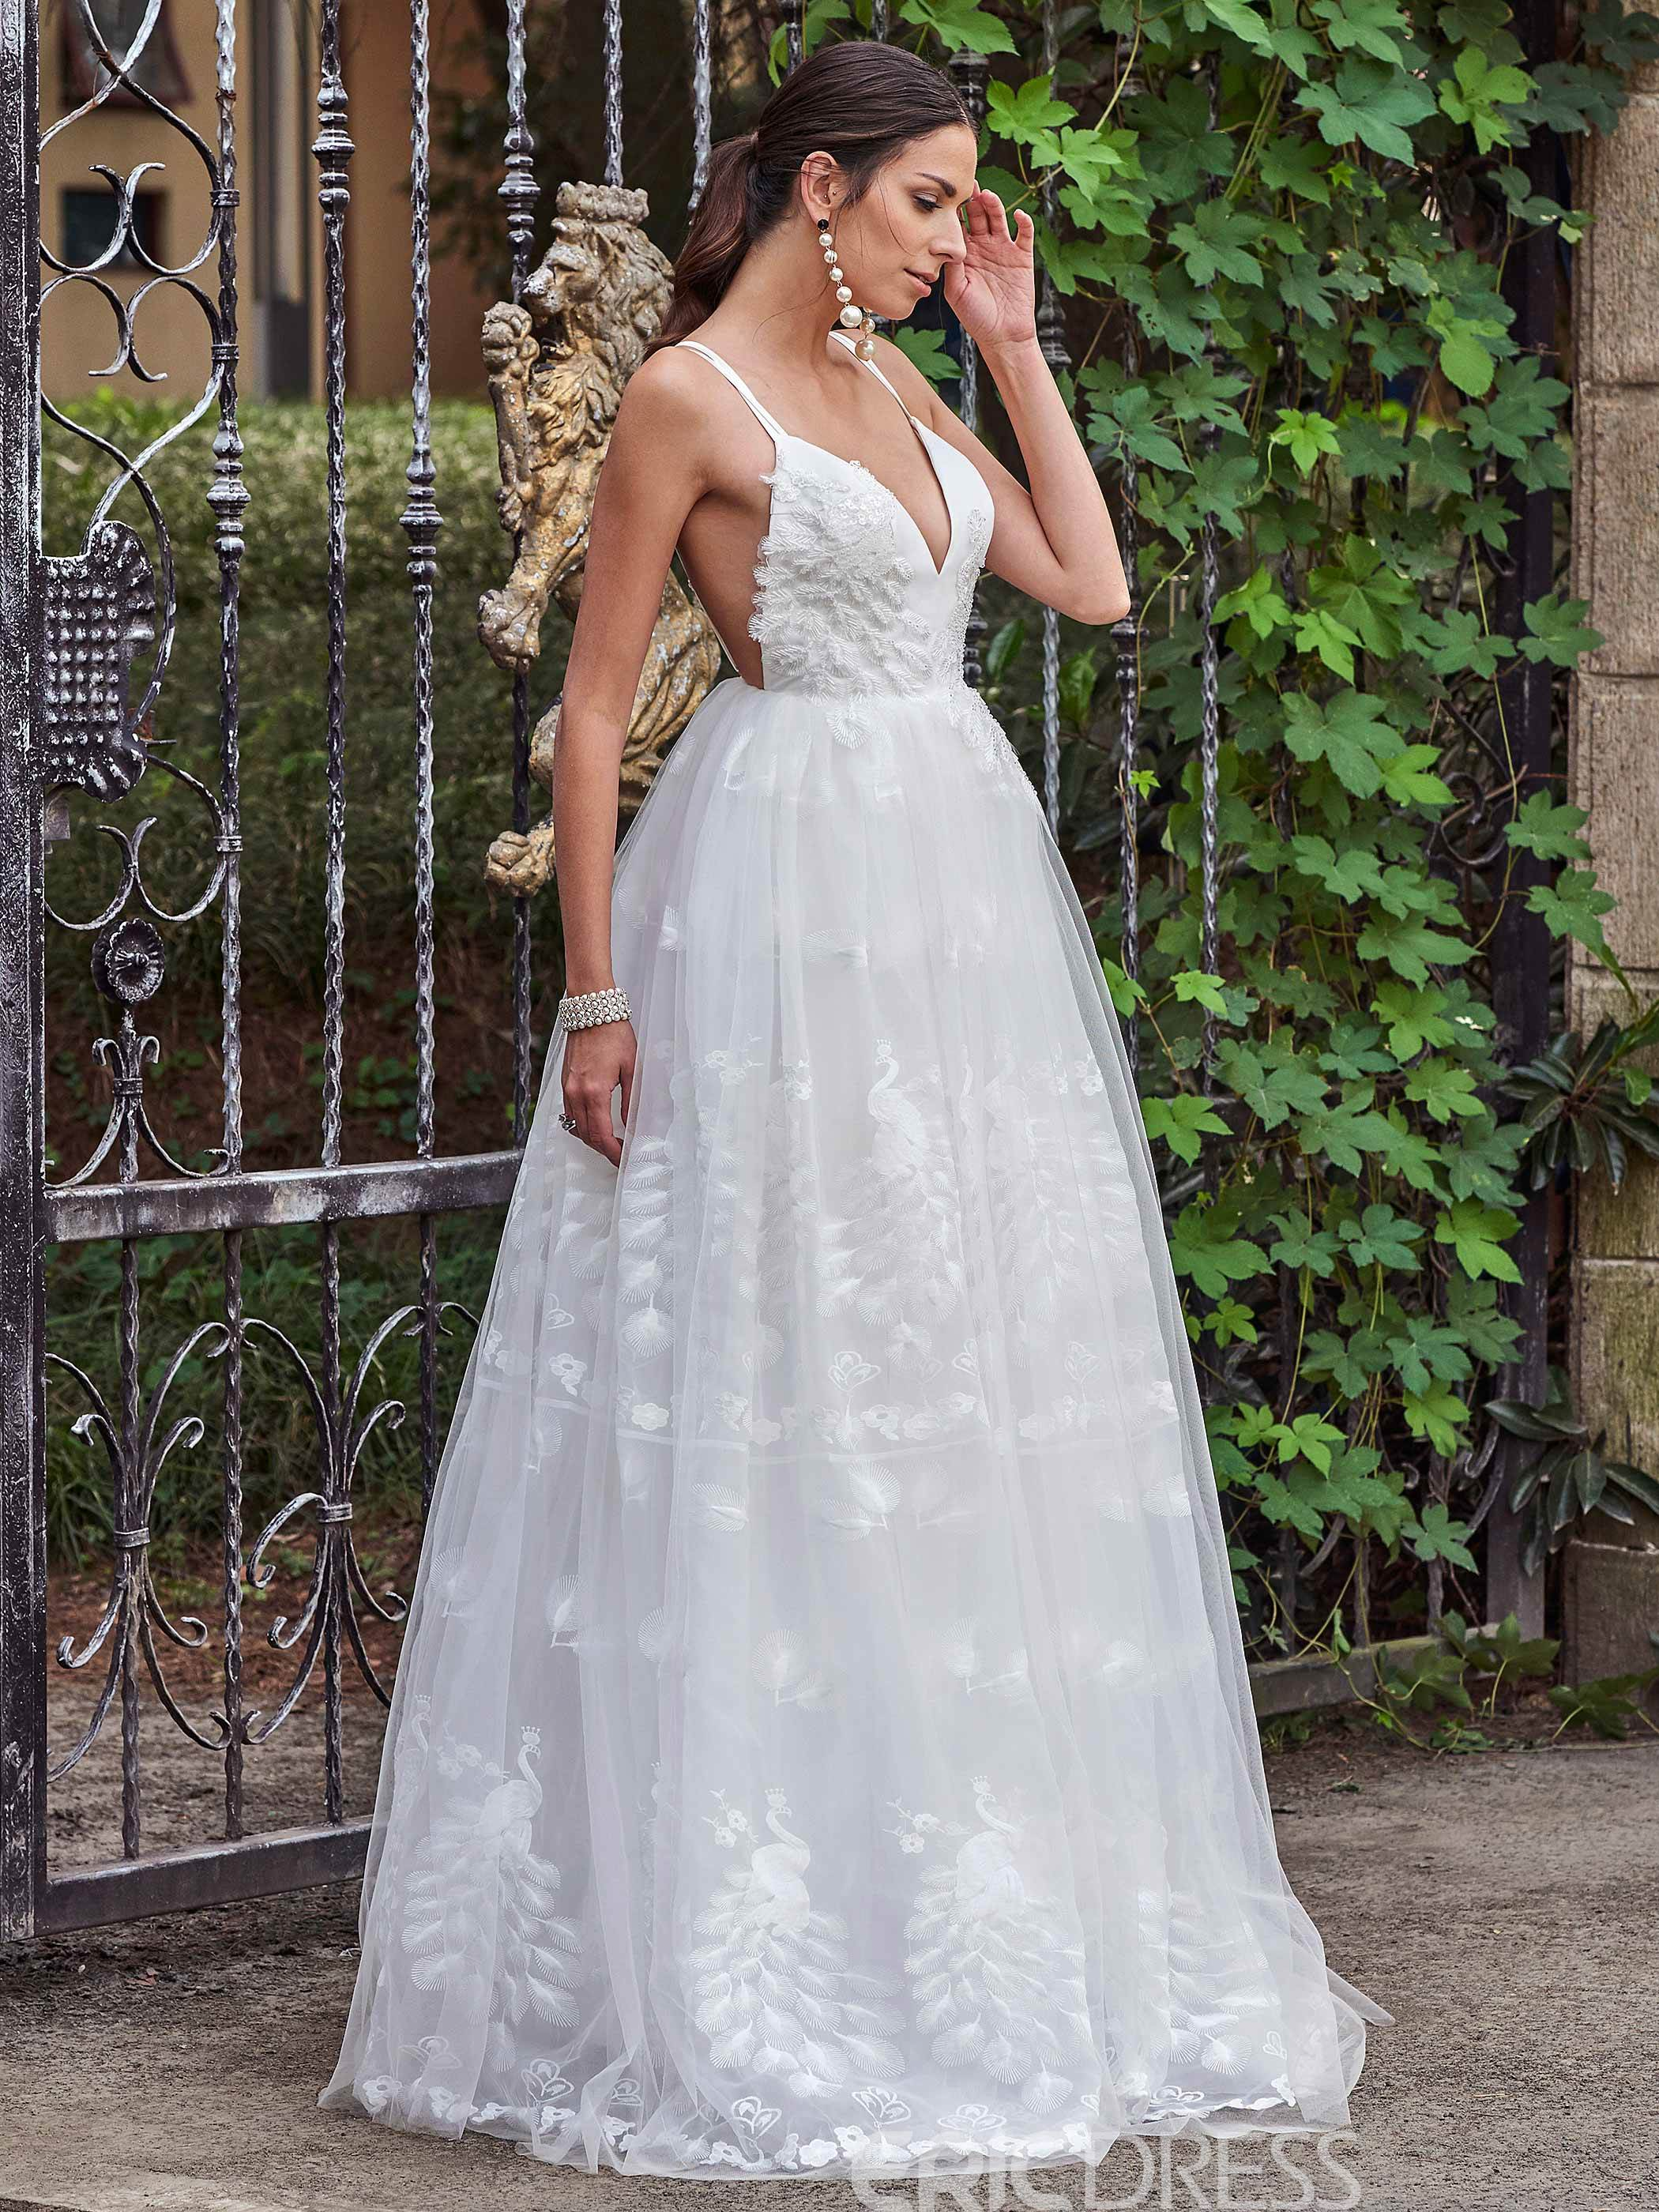 Ericdress Charming Spaghetti Straps A Line Backless Lace Wedding Dress